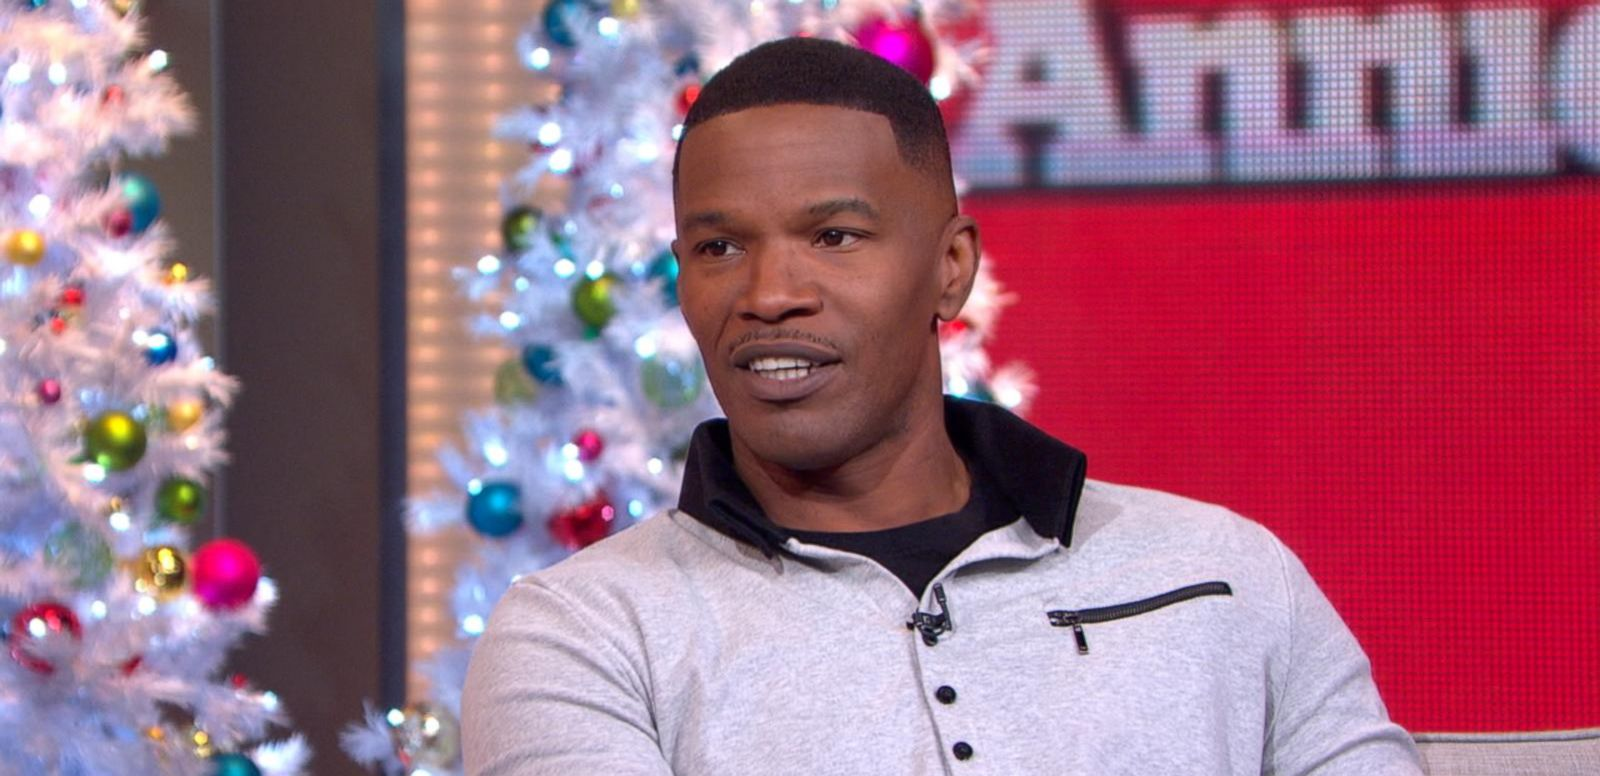 VIDEO: Jamie Foxx on Who Made Him Want to Be in 'Annie'